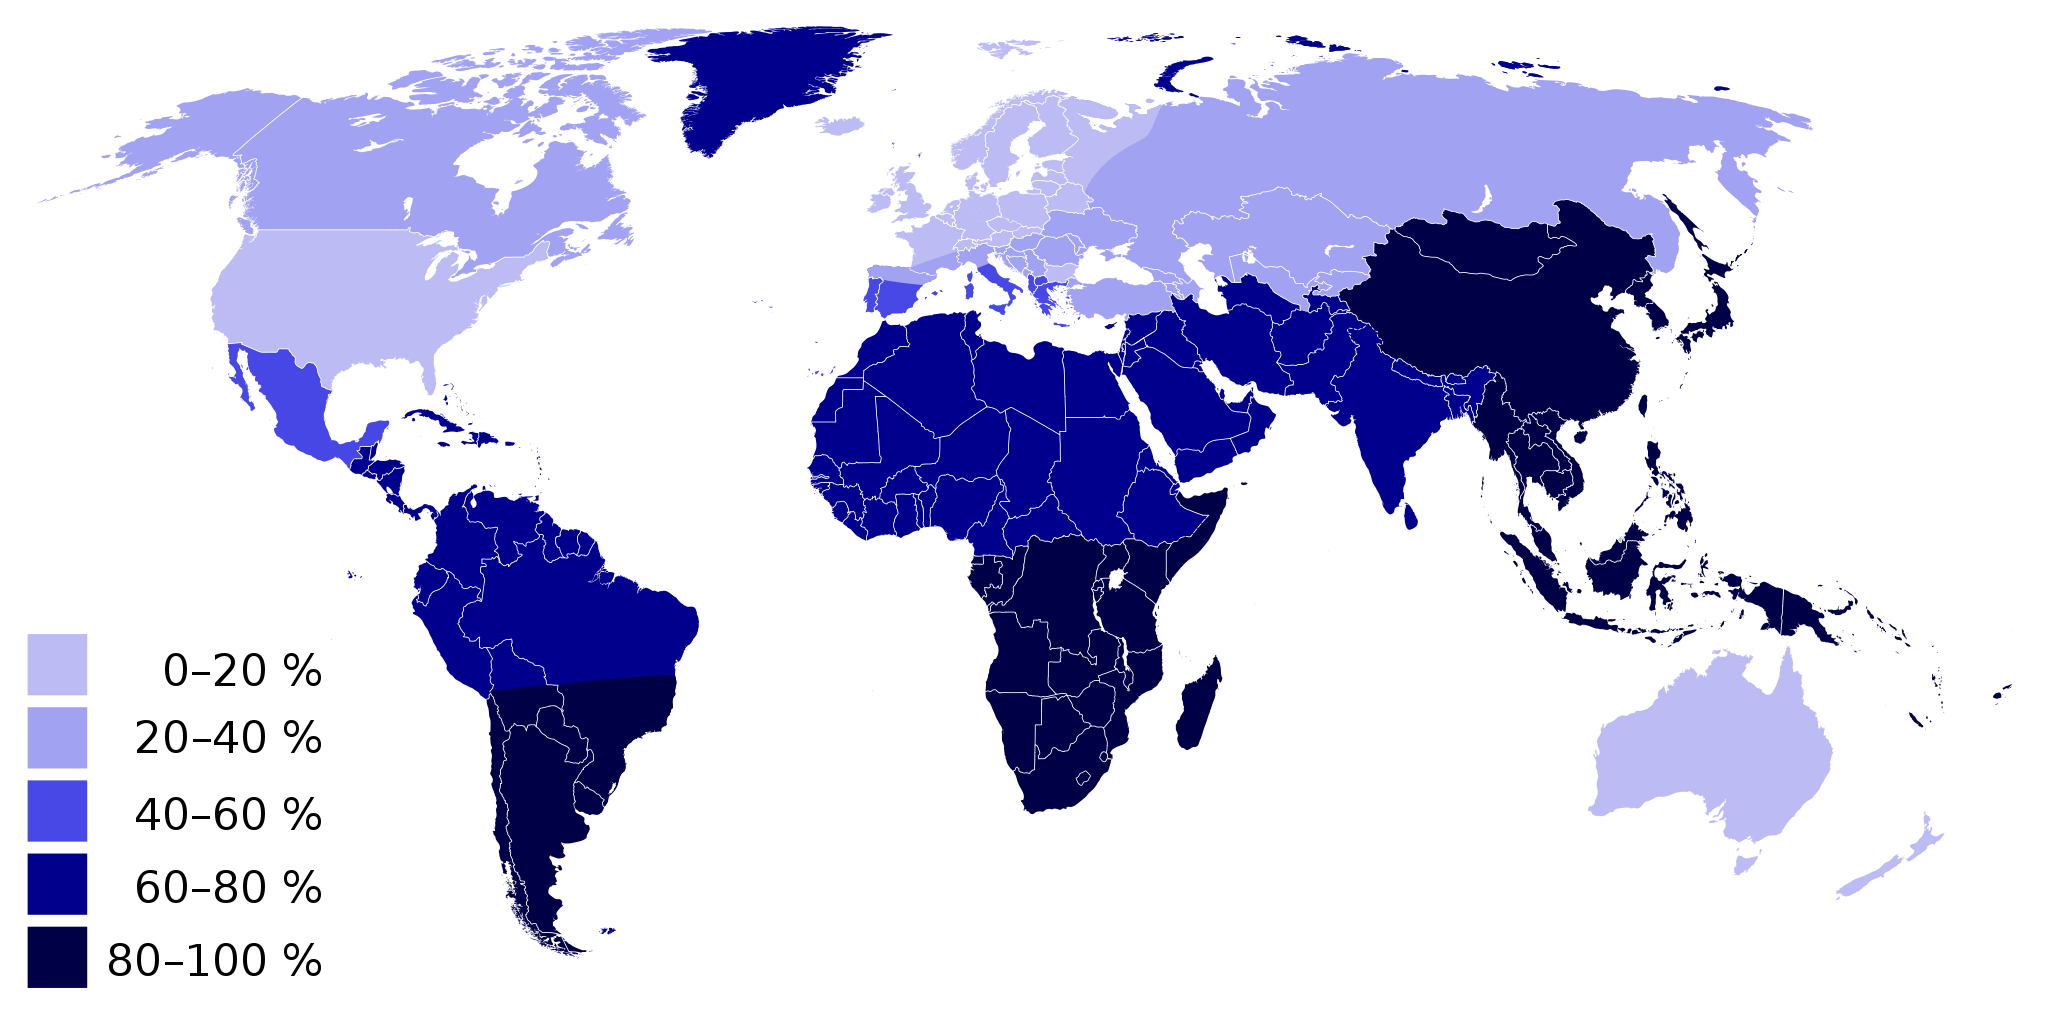 Worldwide map of Lactose Intolerance